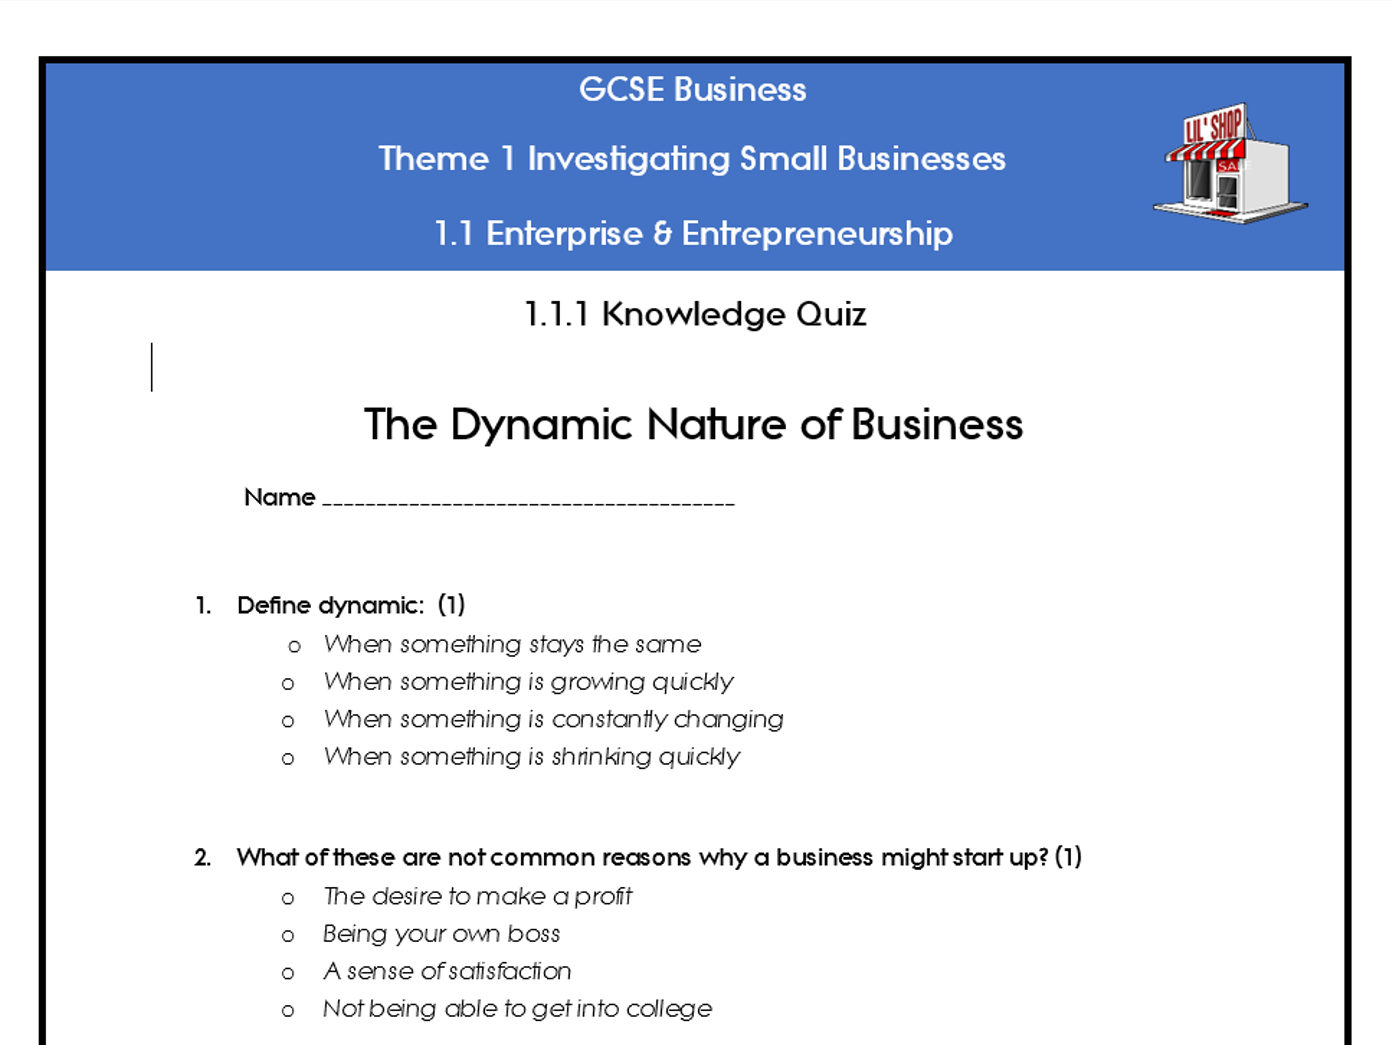 Edexcel GCSE Business 9-1 Theme 1 Quizzes and knowledge organisers